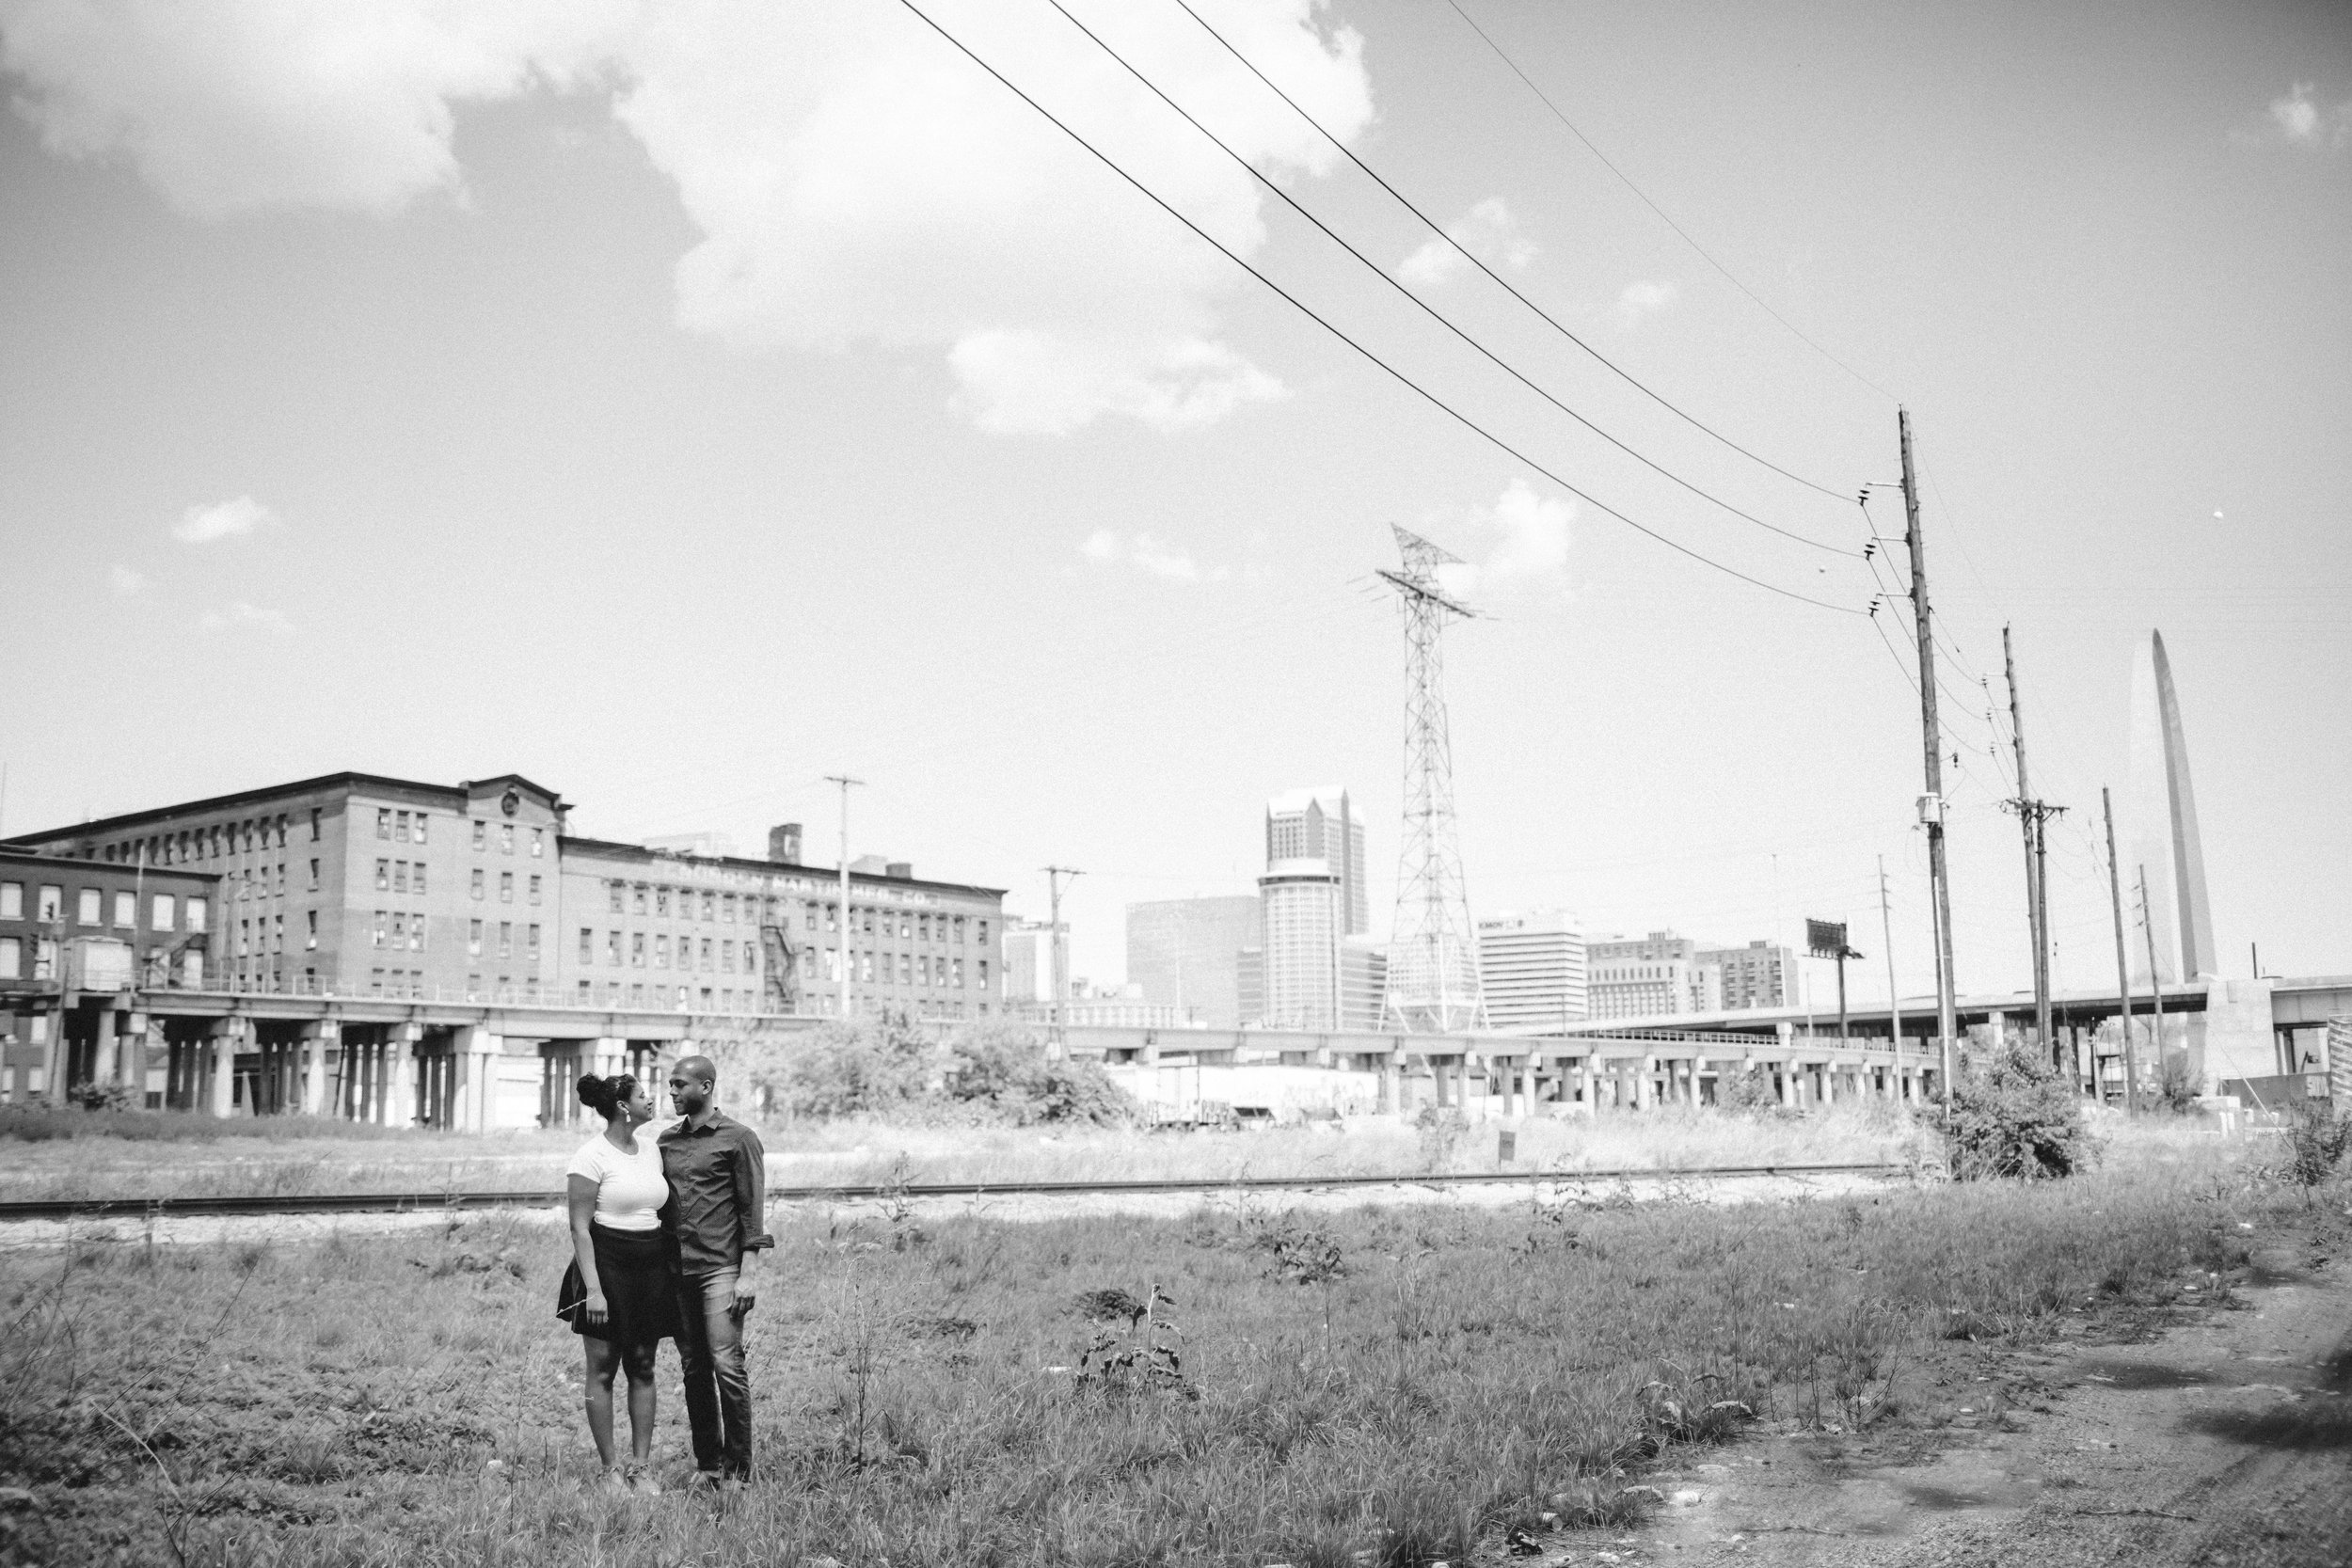 engagement photography Chicago, Chicago engagement photos, engagement photography St. Louis, engagement portraits Denver, engagement photographer St. Louis